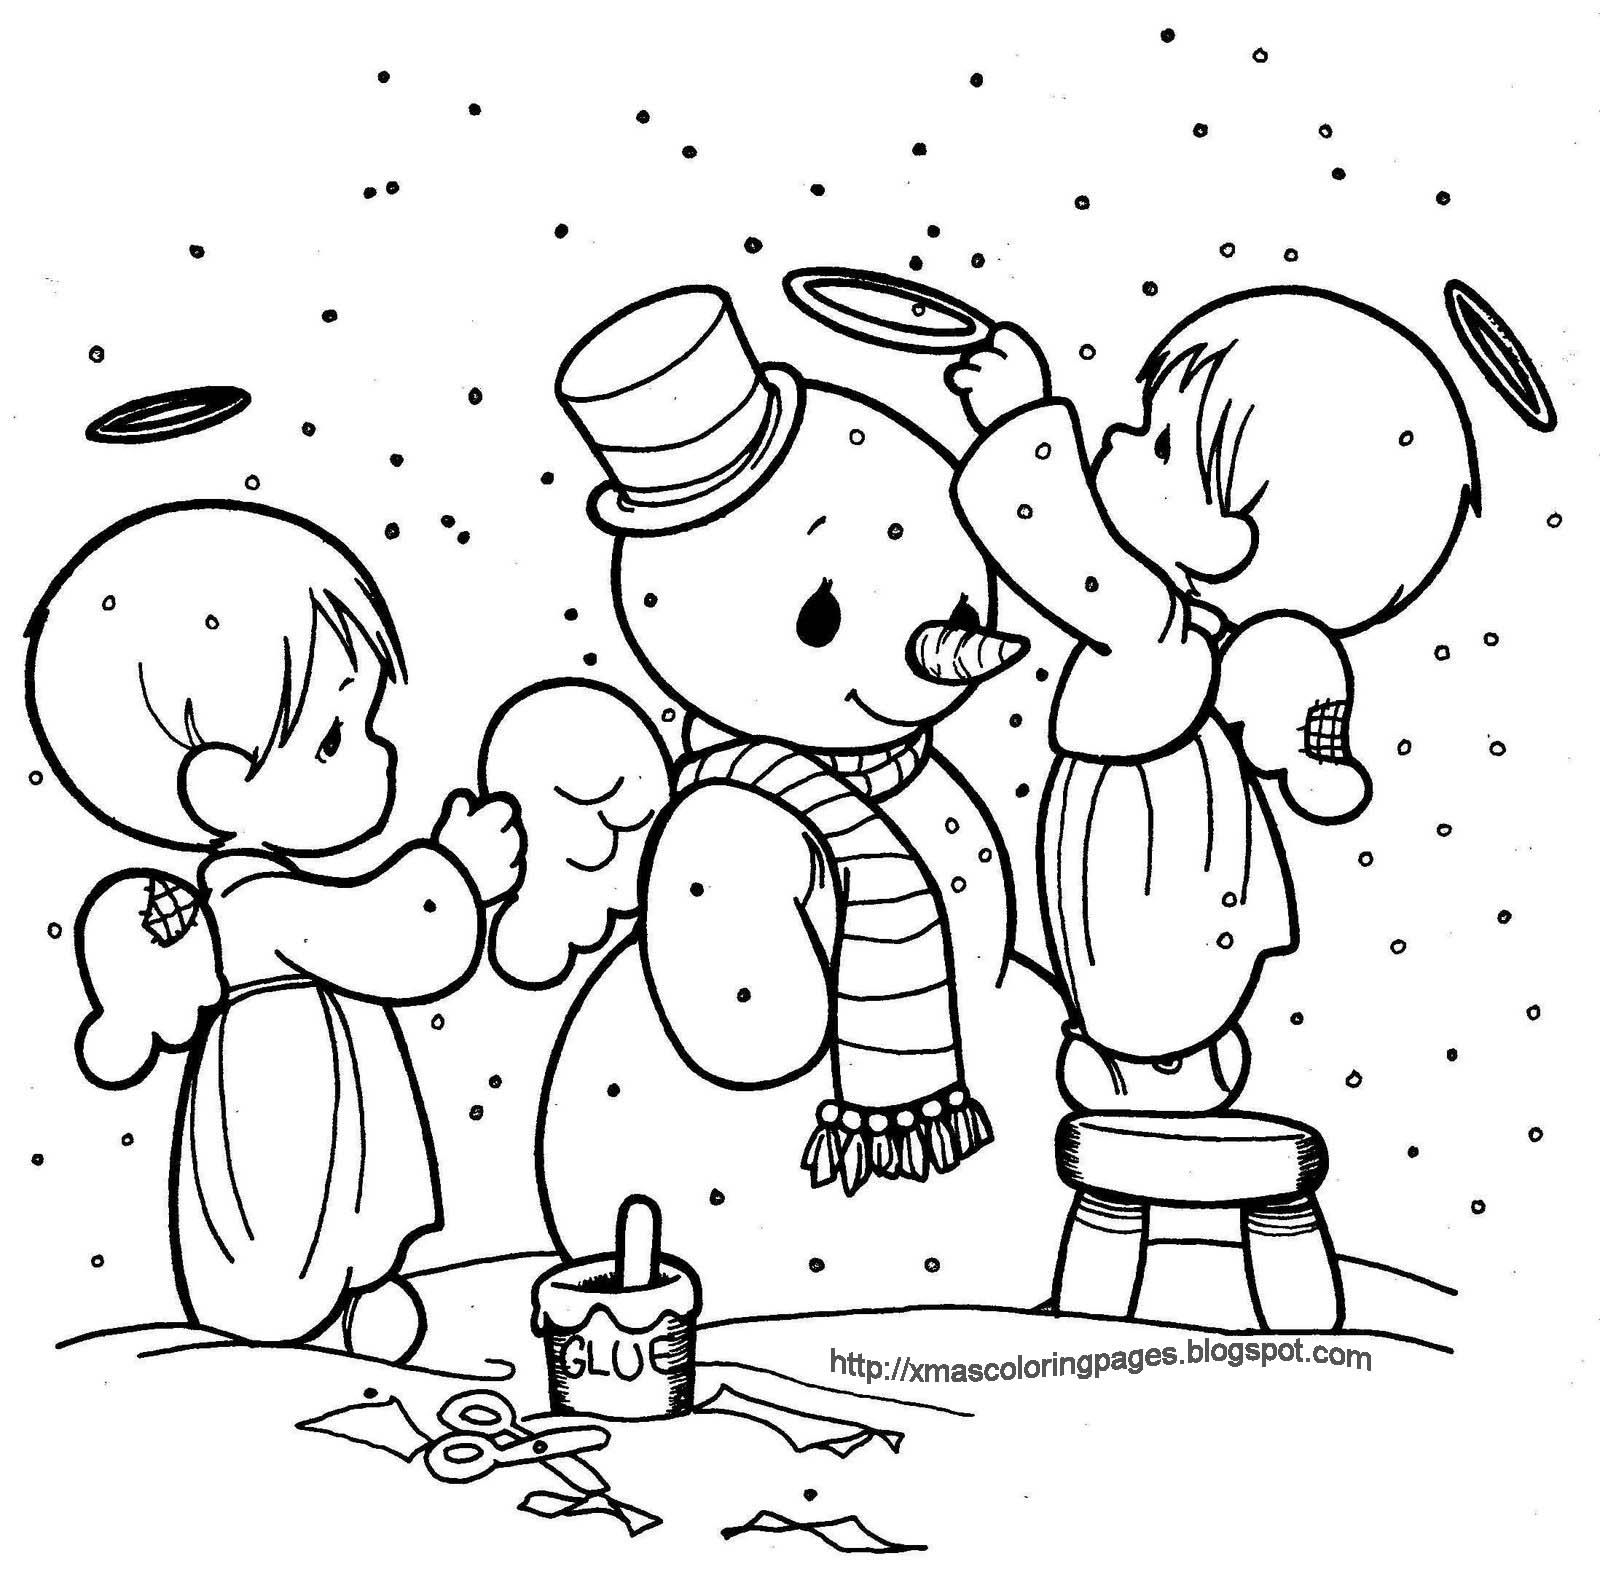 Xmas Coloring Pages Angel Coloring Pages Precious Moments Coloring Pages Christmas Coloring Pages